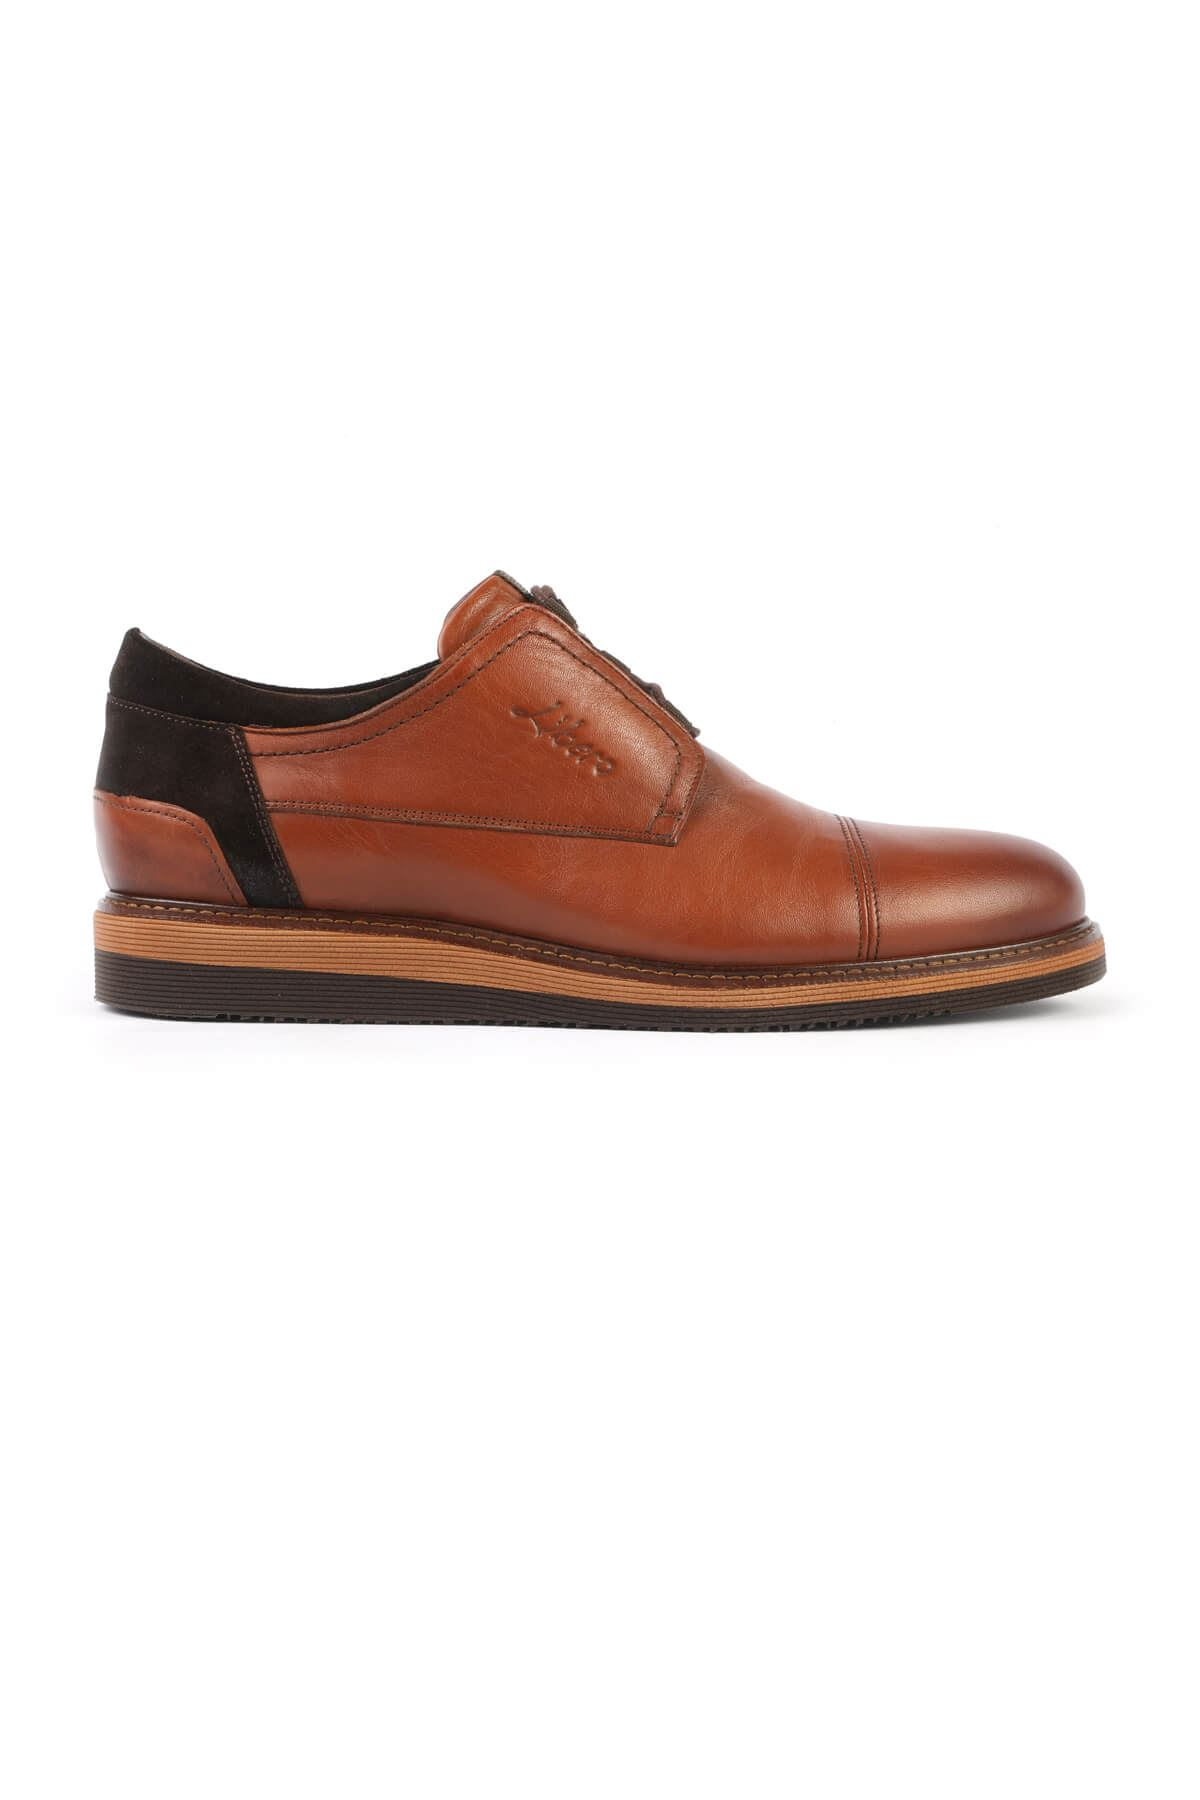 Libero 2646 Brown Oxford Shoes